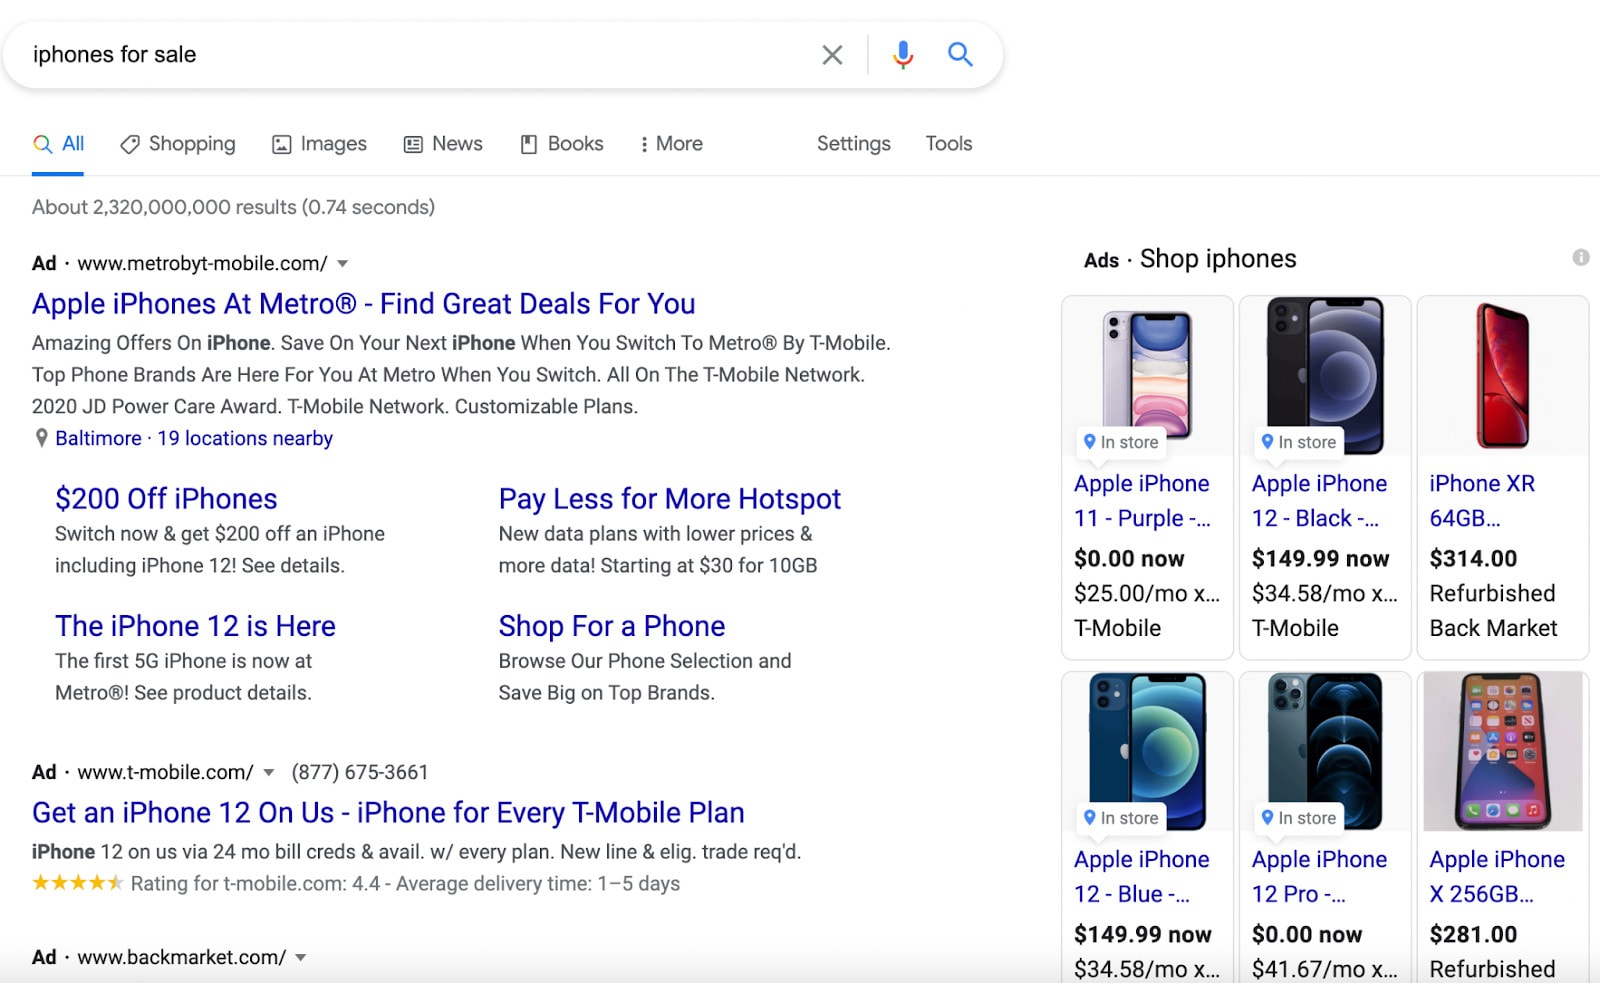 """Search ads on the SERP for the query """"iphones for sale."""""""